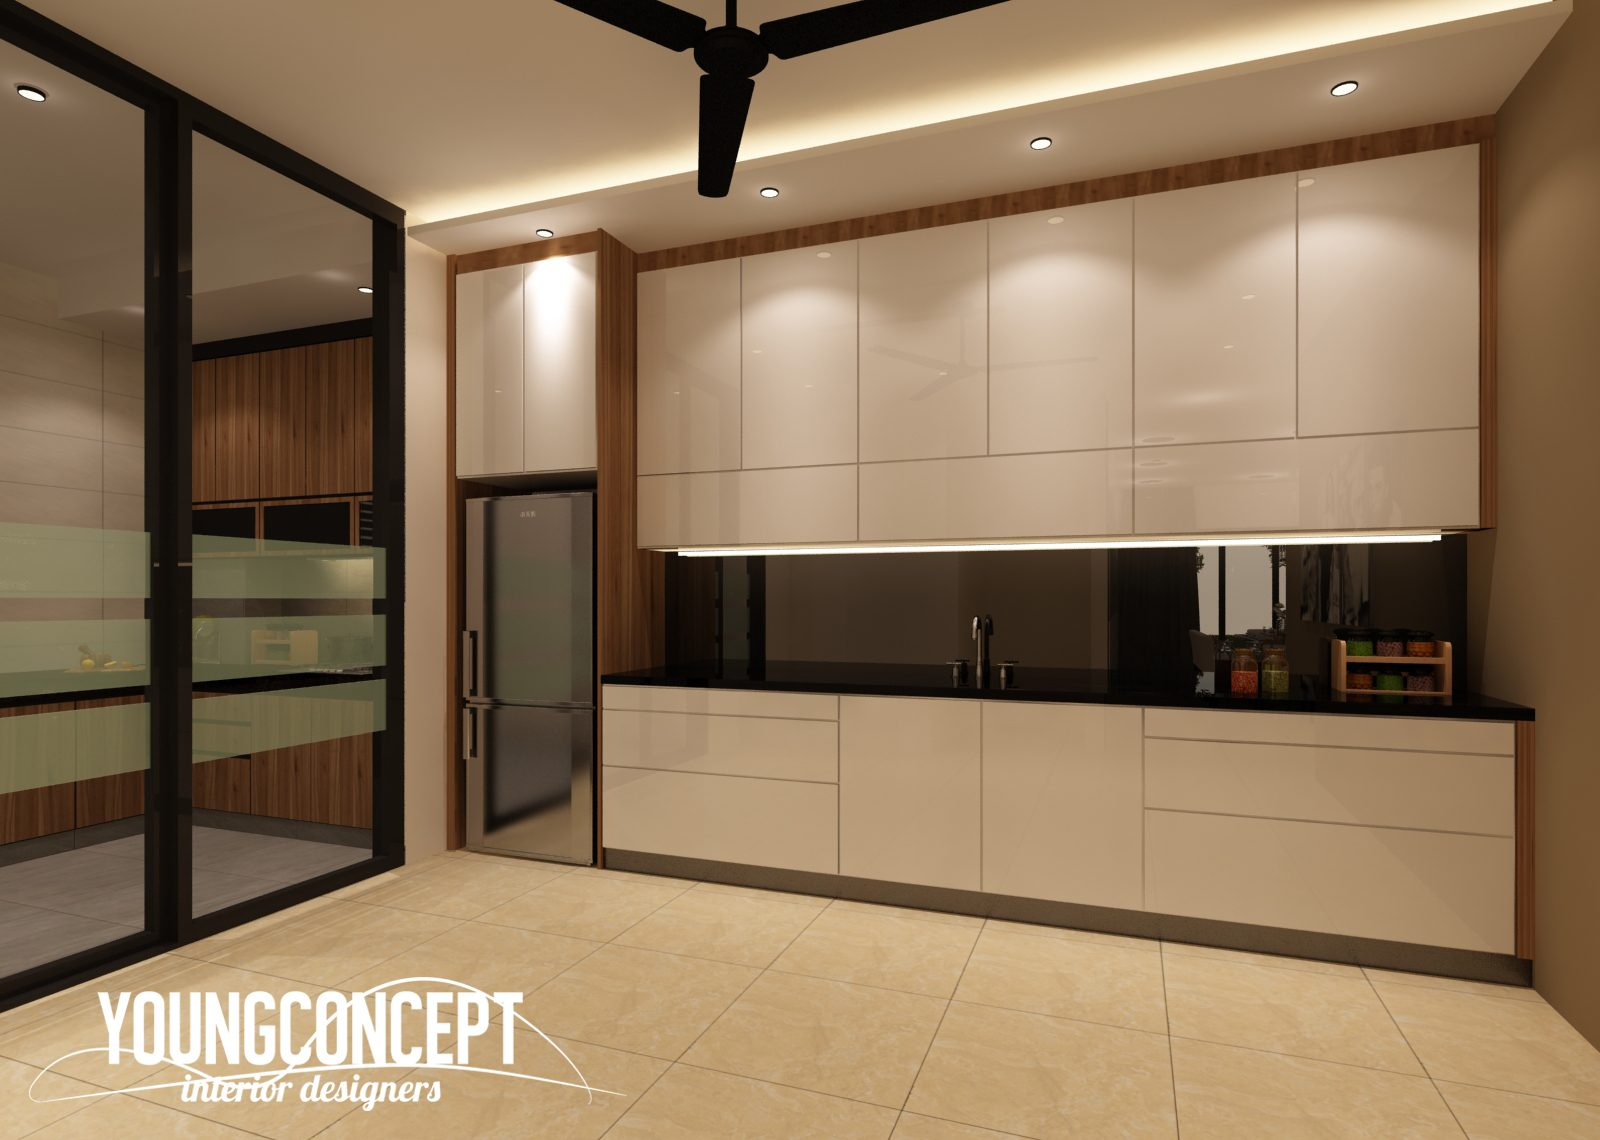 Dry Kitchen design for Semi-Detached House in SD Villa, Shah Alam. Project by: Young Concept Design